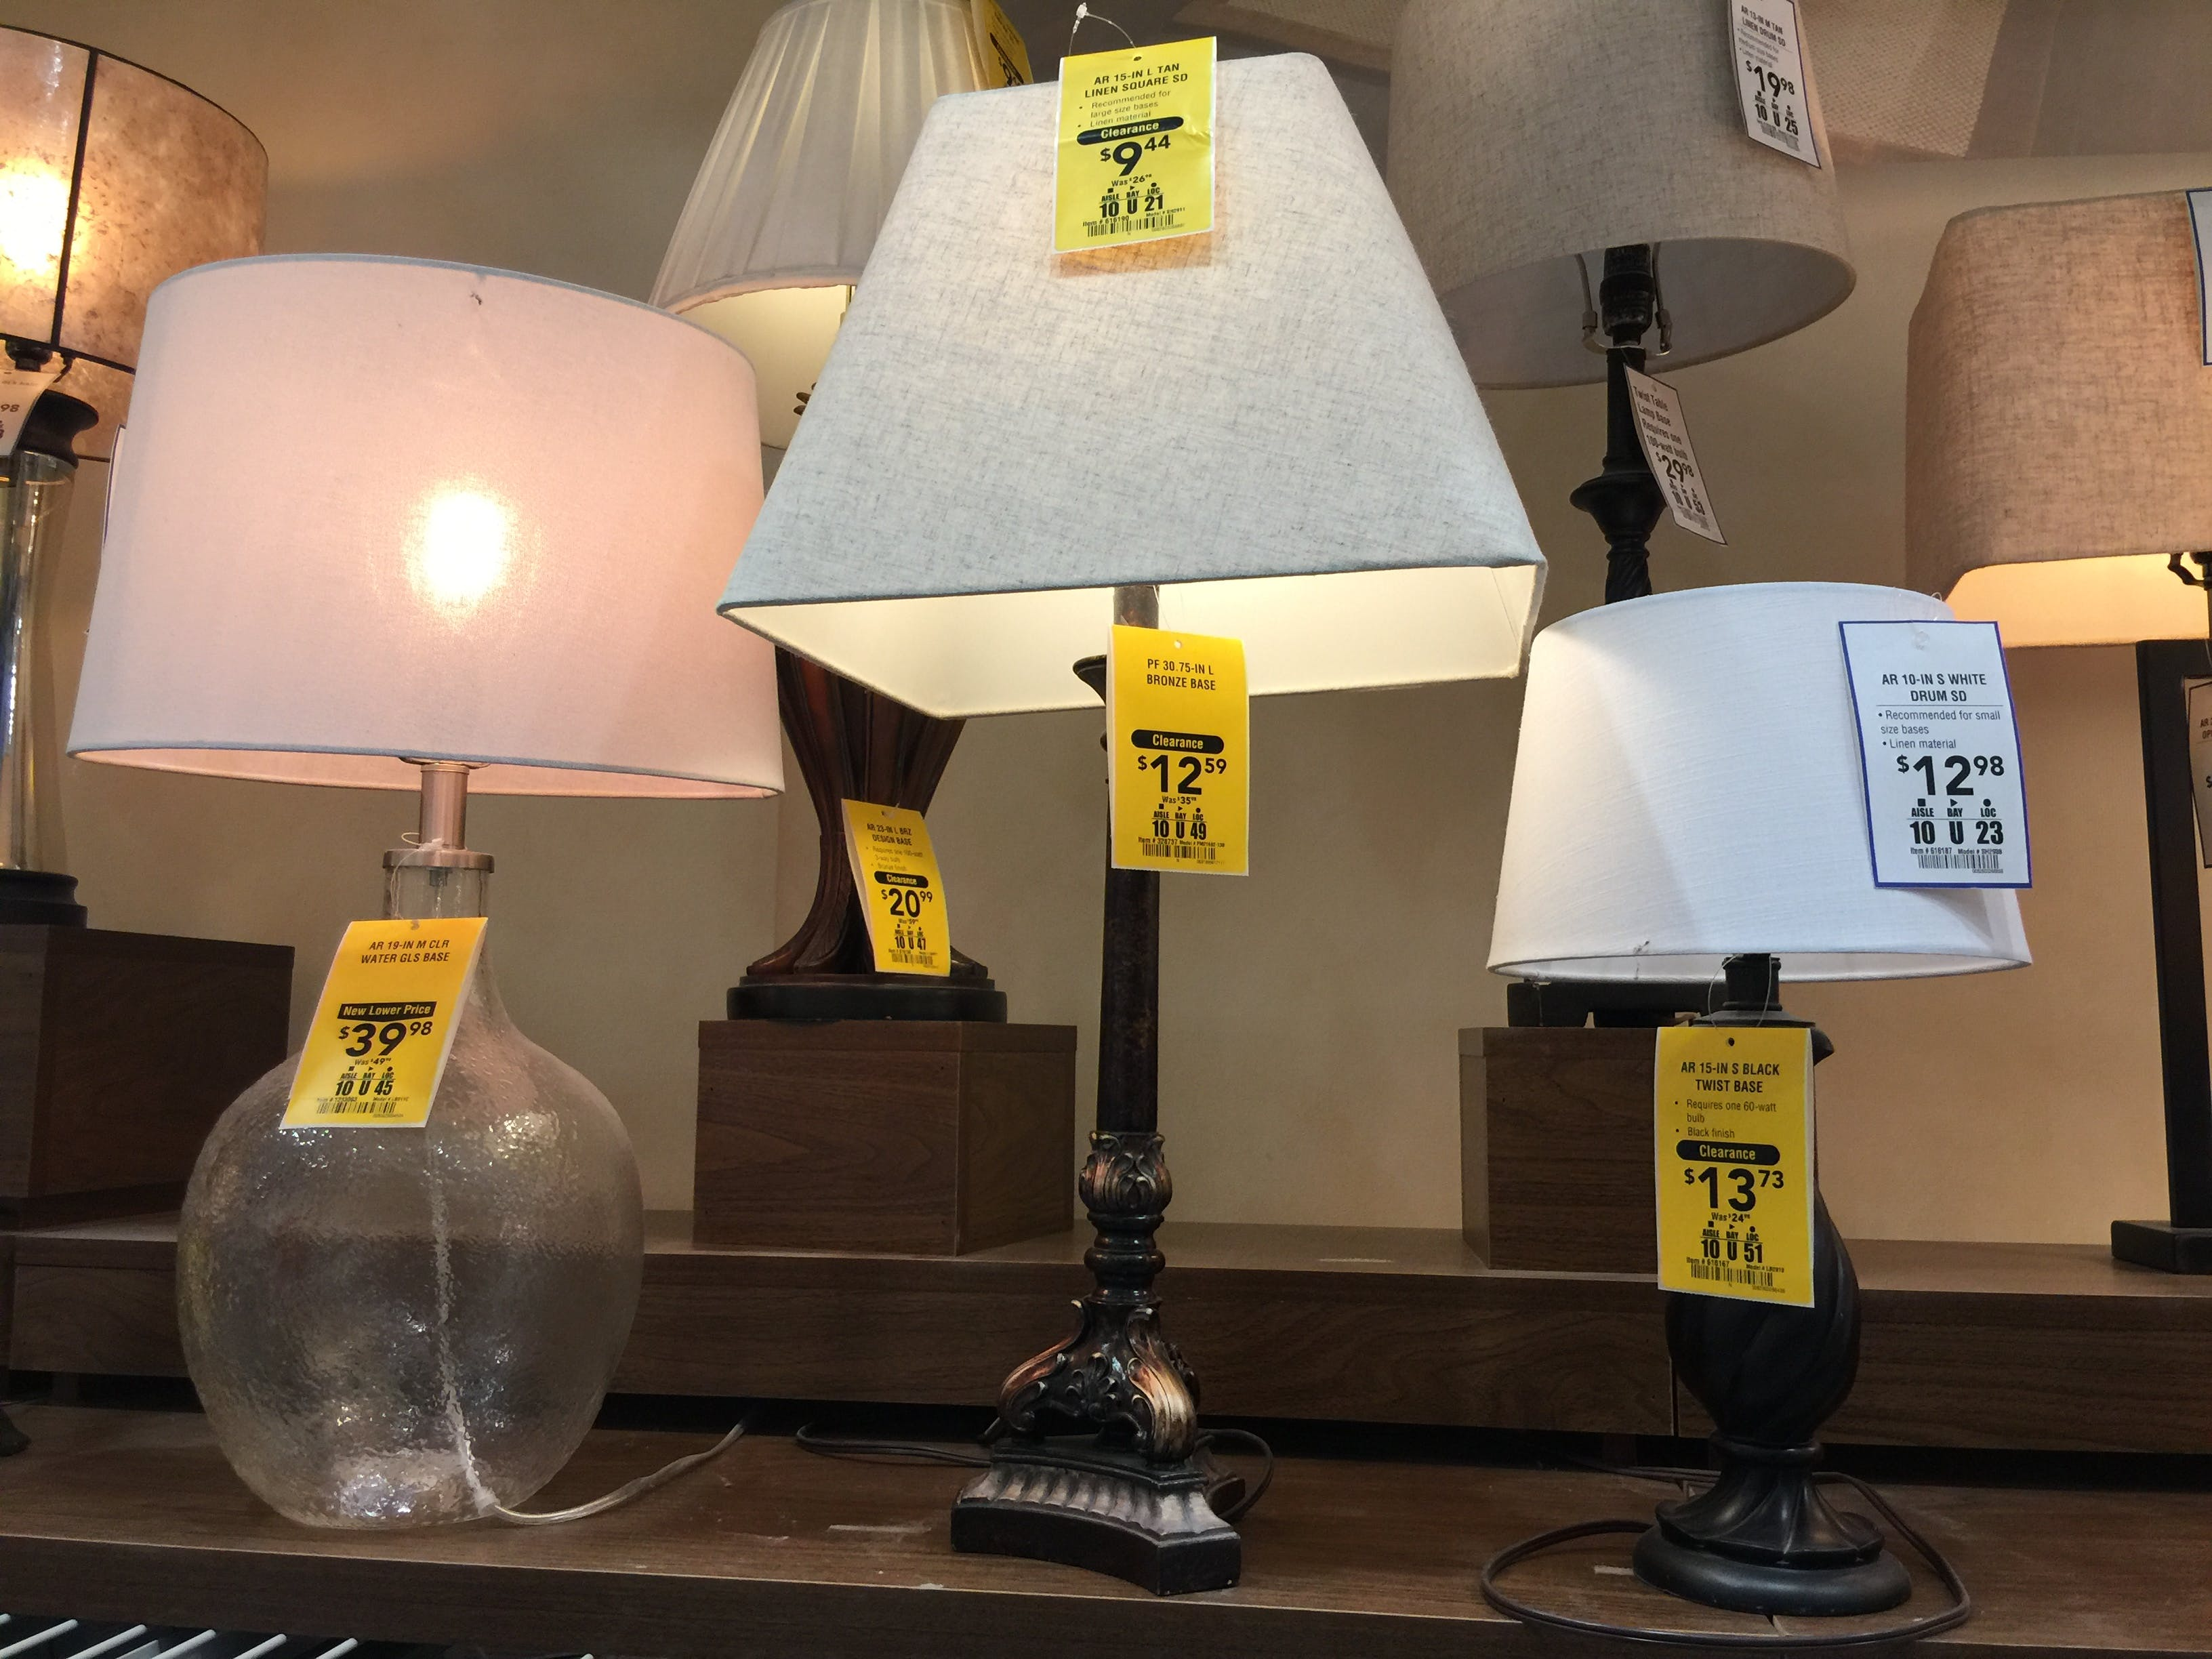 Clearance Table Lamps Up To 80 Off At Lowe S The Krazy Coupon Lady